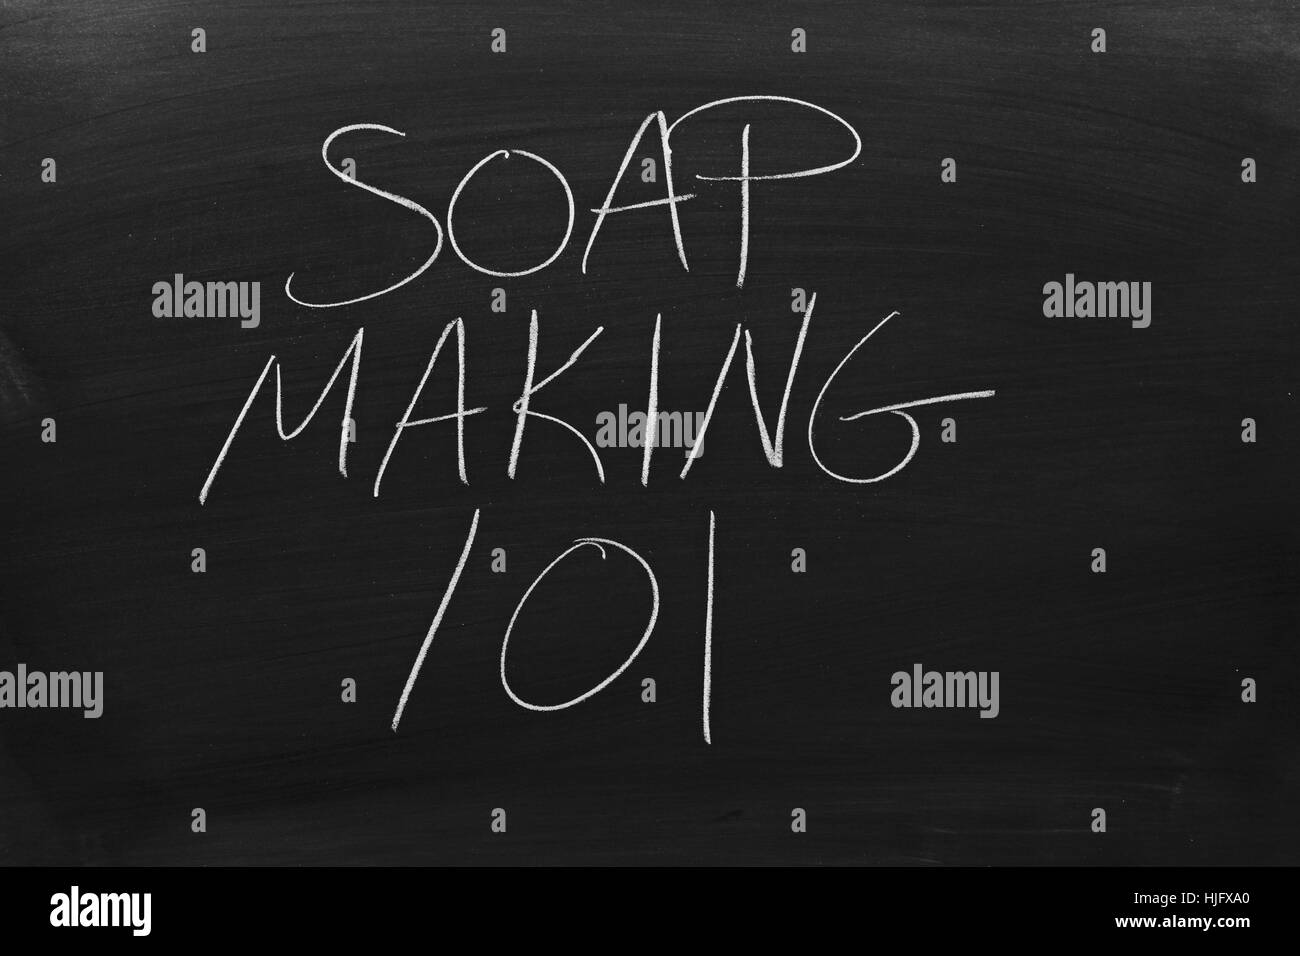 The words 'Soap Making 101' on a blackboard in chalk - Stock Image